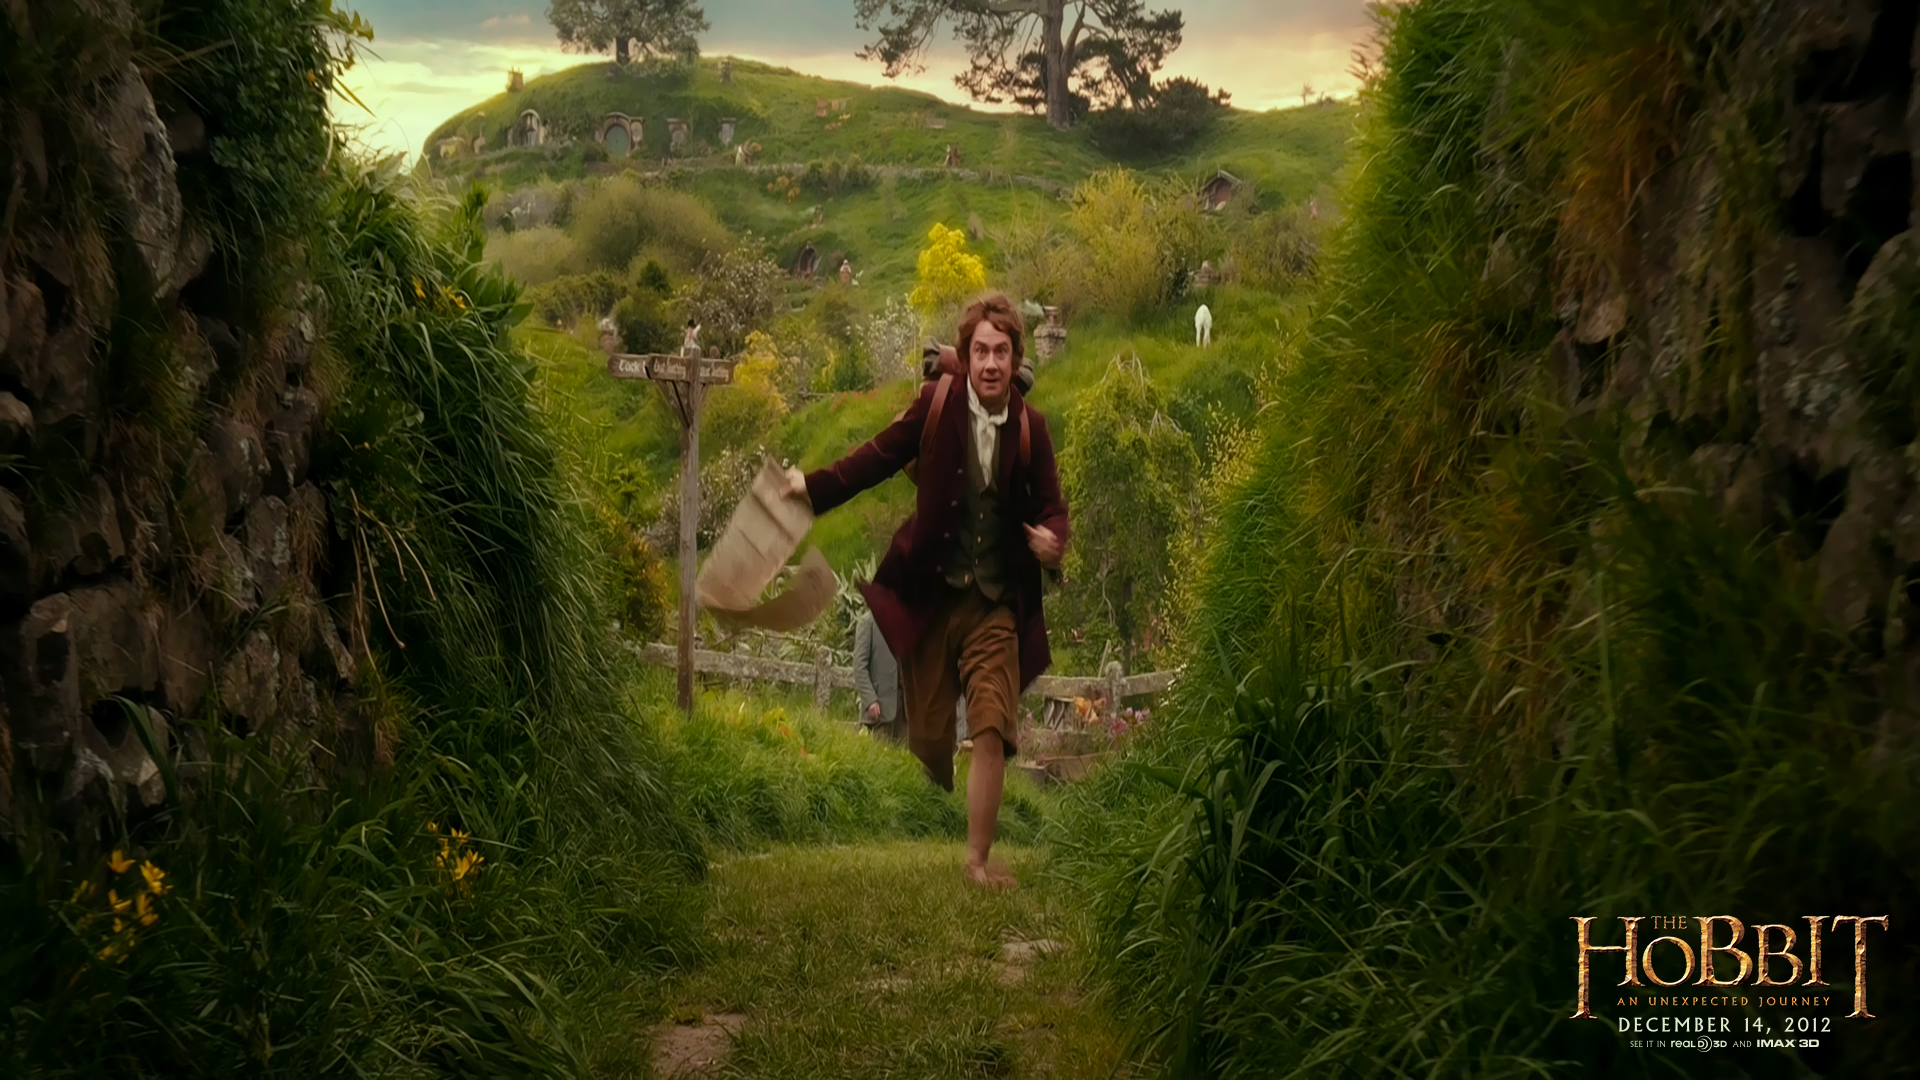 HD ] Wallpapers del Hobbit   Taringa 1920x1080